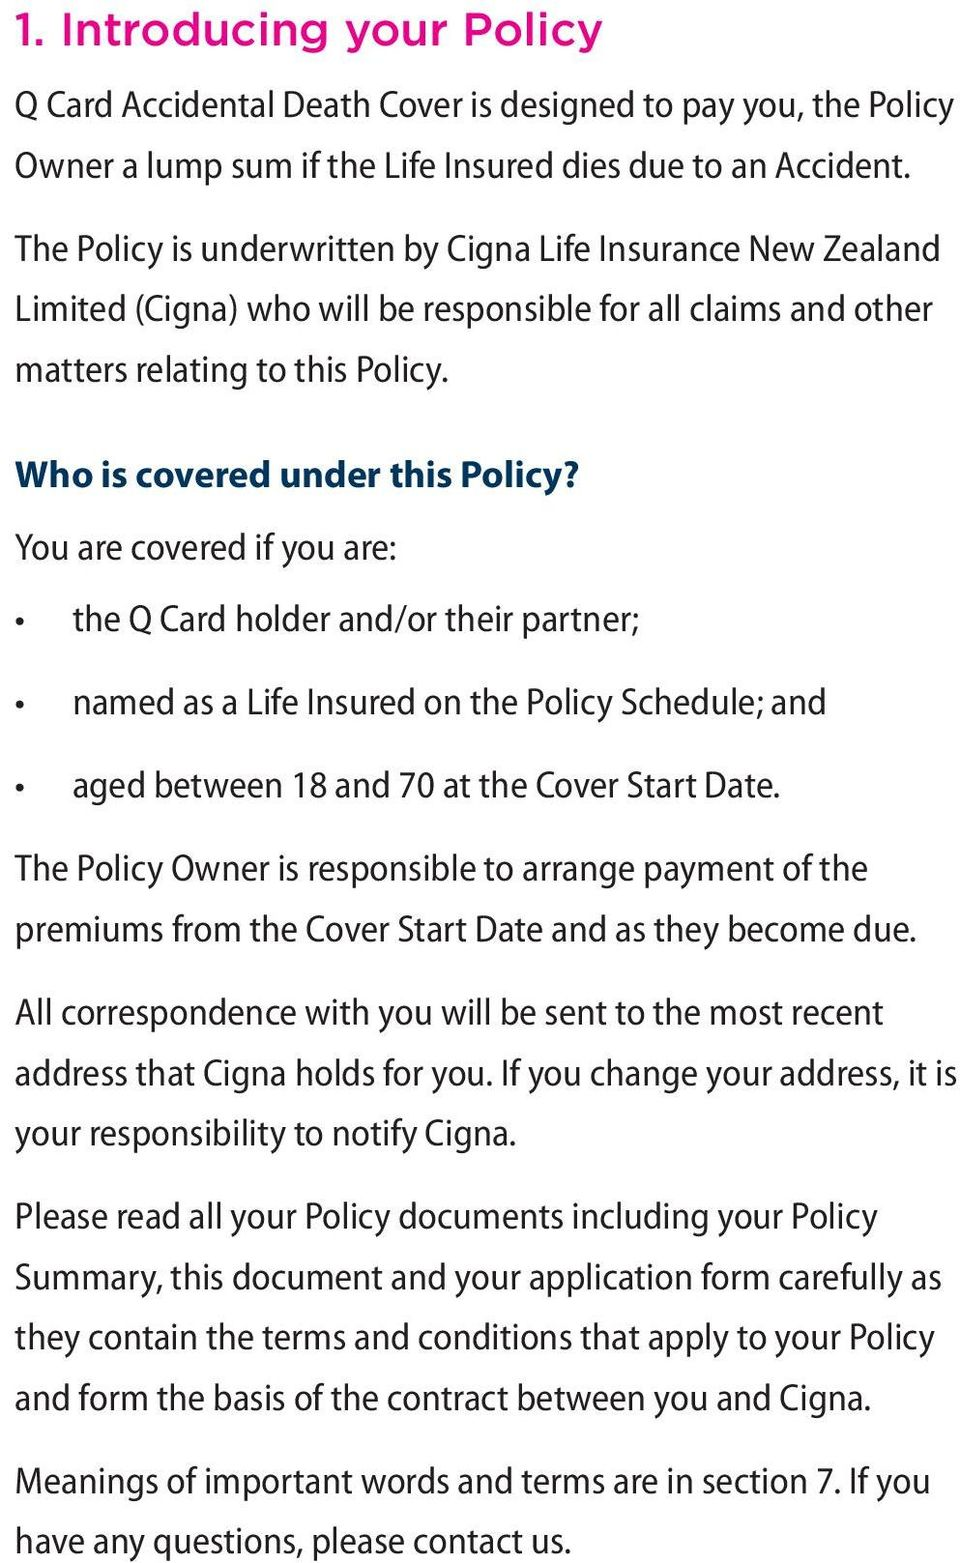 You are covered if you are: the Q Card holder and/or their partner; named as a Life Insured on the Policy Schedule; and aged between 18 and 70 at the Cover Start Date.